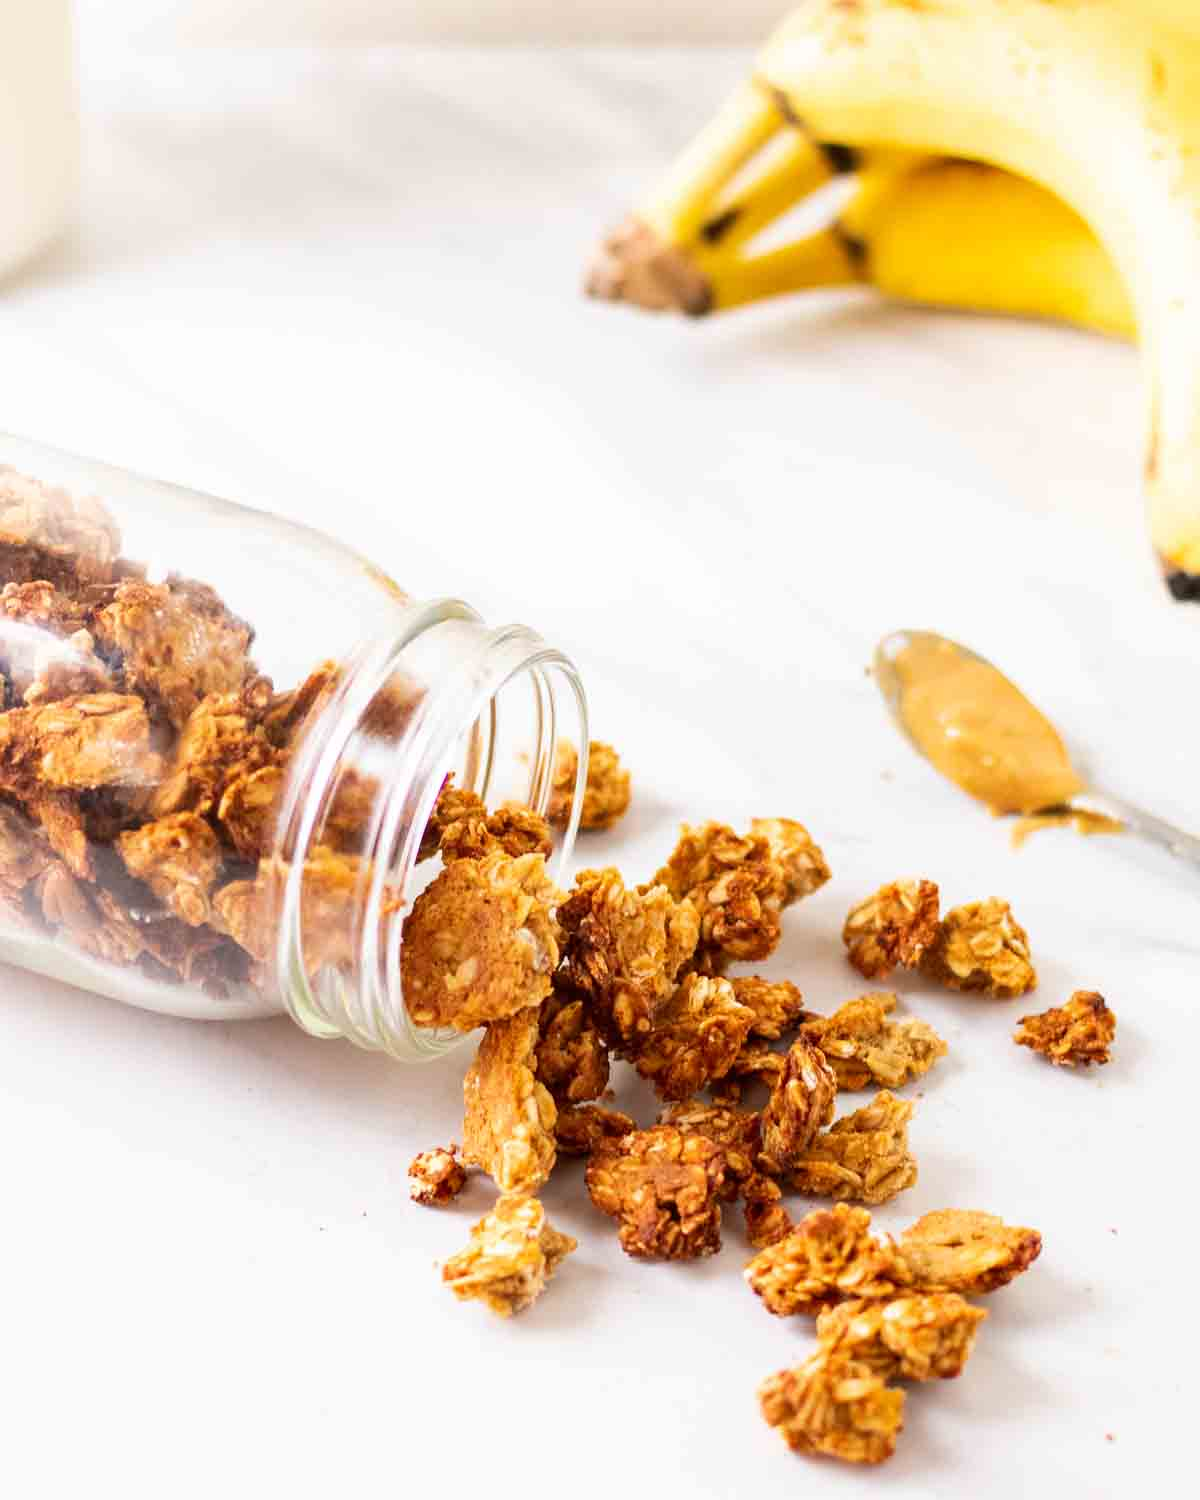 Granola spilling out of a jar with spoonful of peanut butter and banana behind.